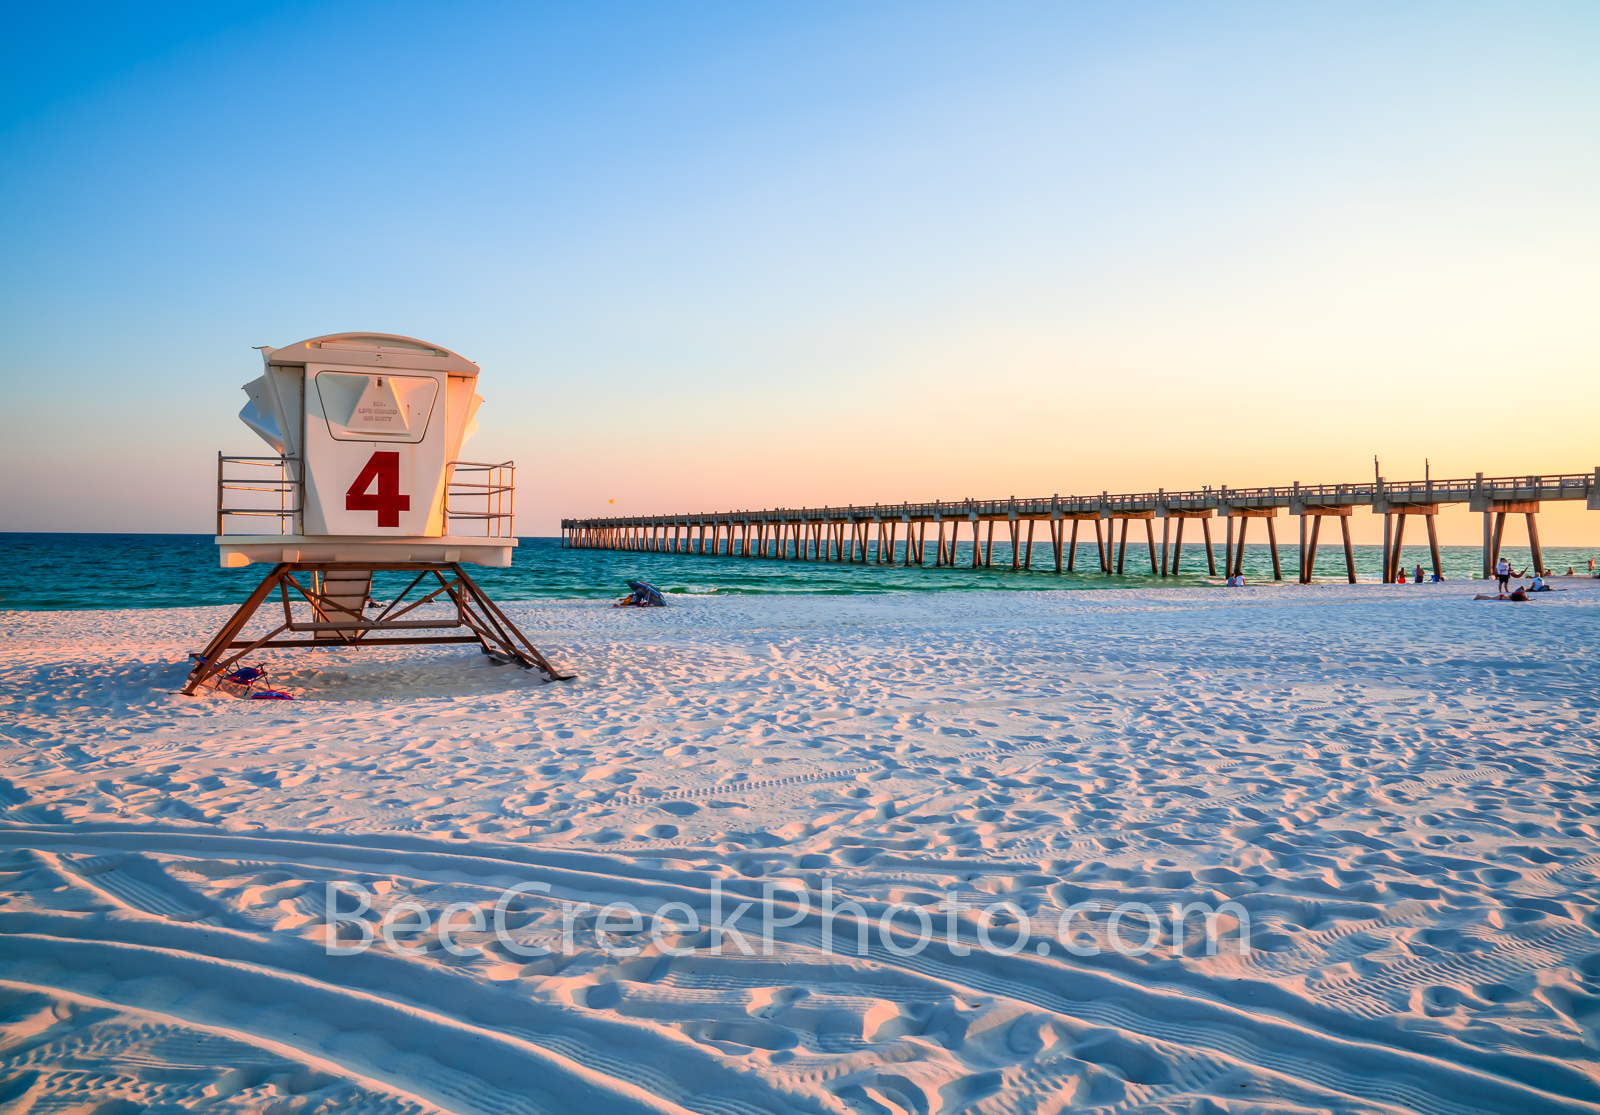 Pensacola Beach Pier and Lifeguard Station -  Pensacola beach and pier right before the sunset over the gulf with lifeguard station...